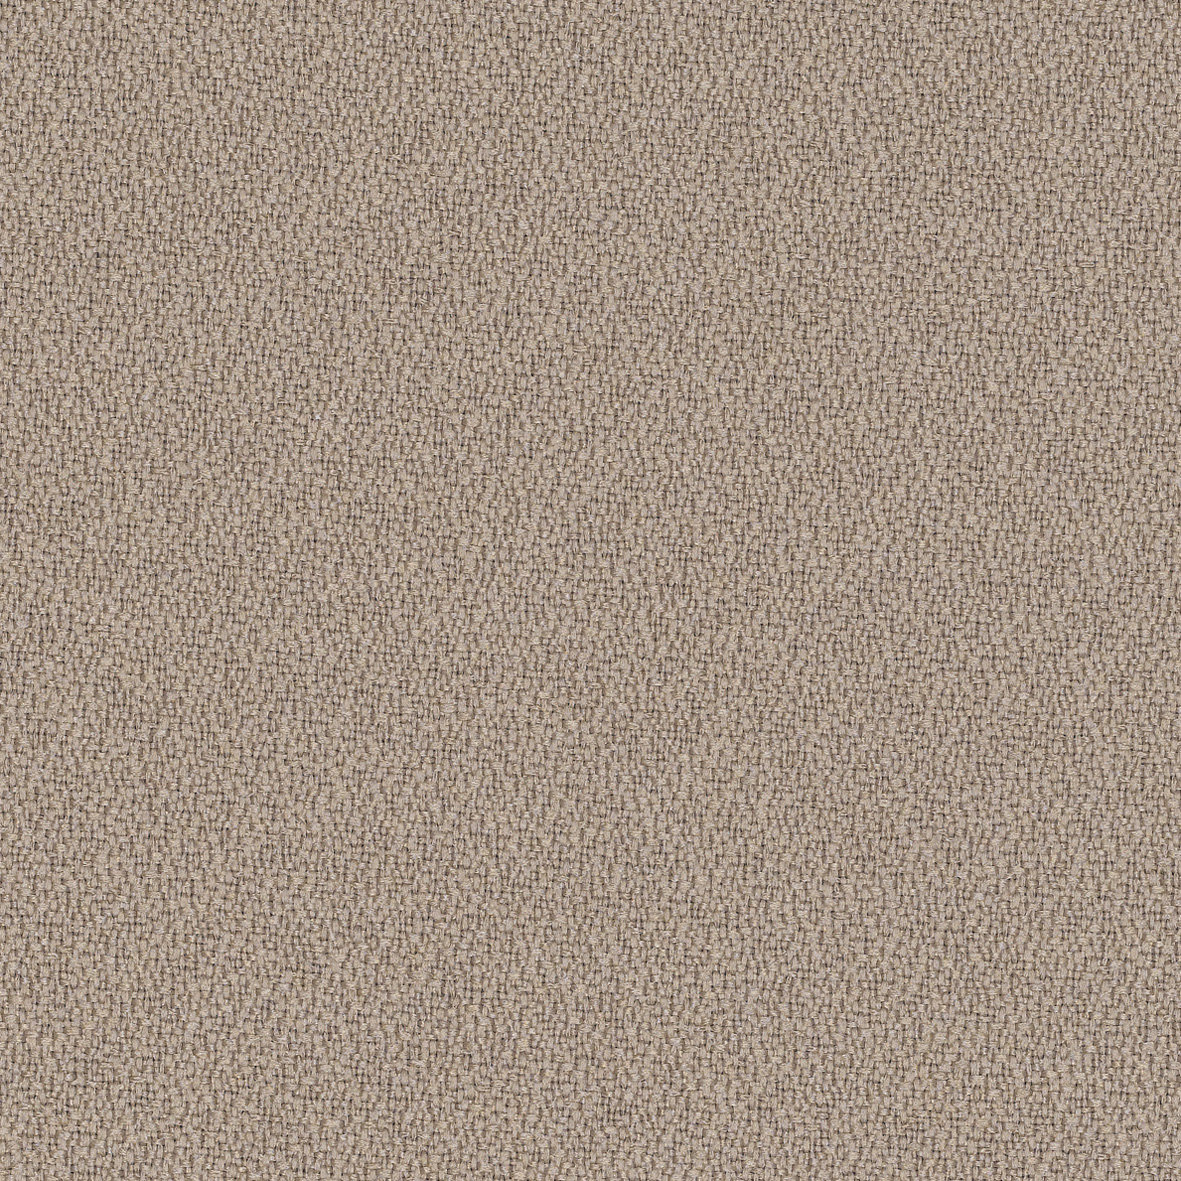 Softline bordskærmvæg beige B600xH450 mm